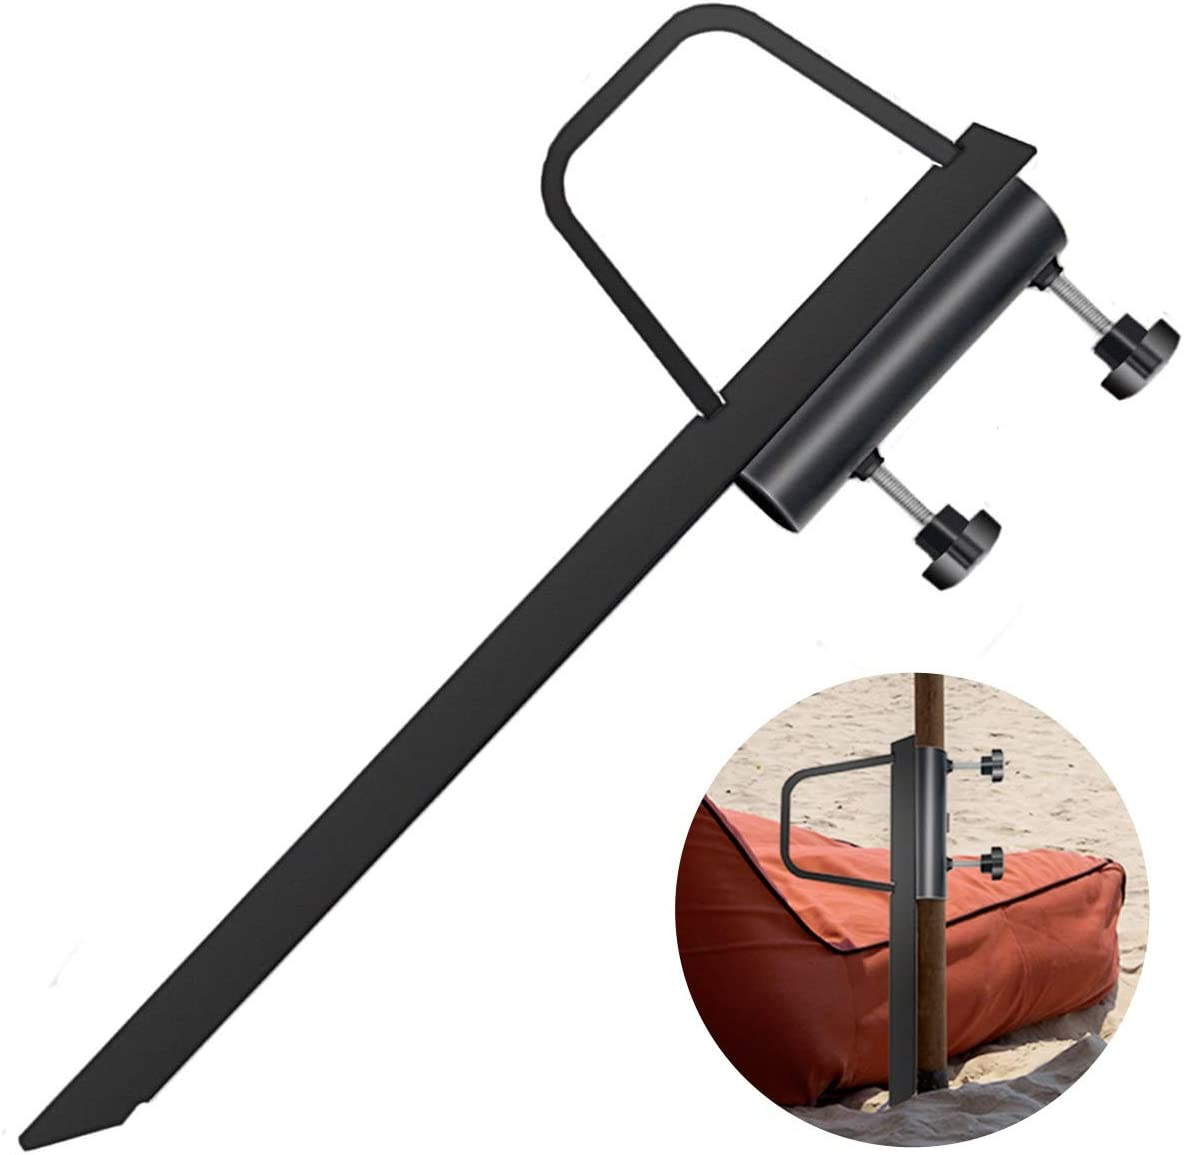 Beach Umbrella Sand Anchor, Outdoor Umbrella Base Stand Heavy Duty Metal for Sand/Grass Pole Holder Anchor Stake Black